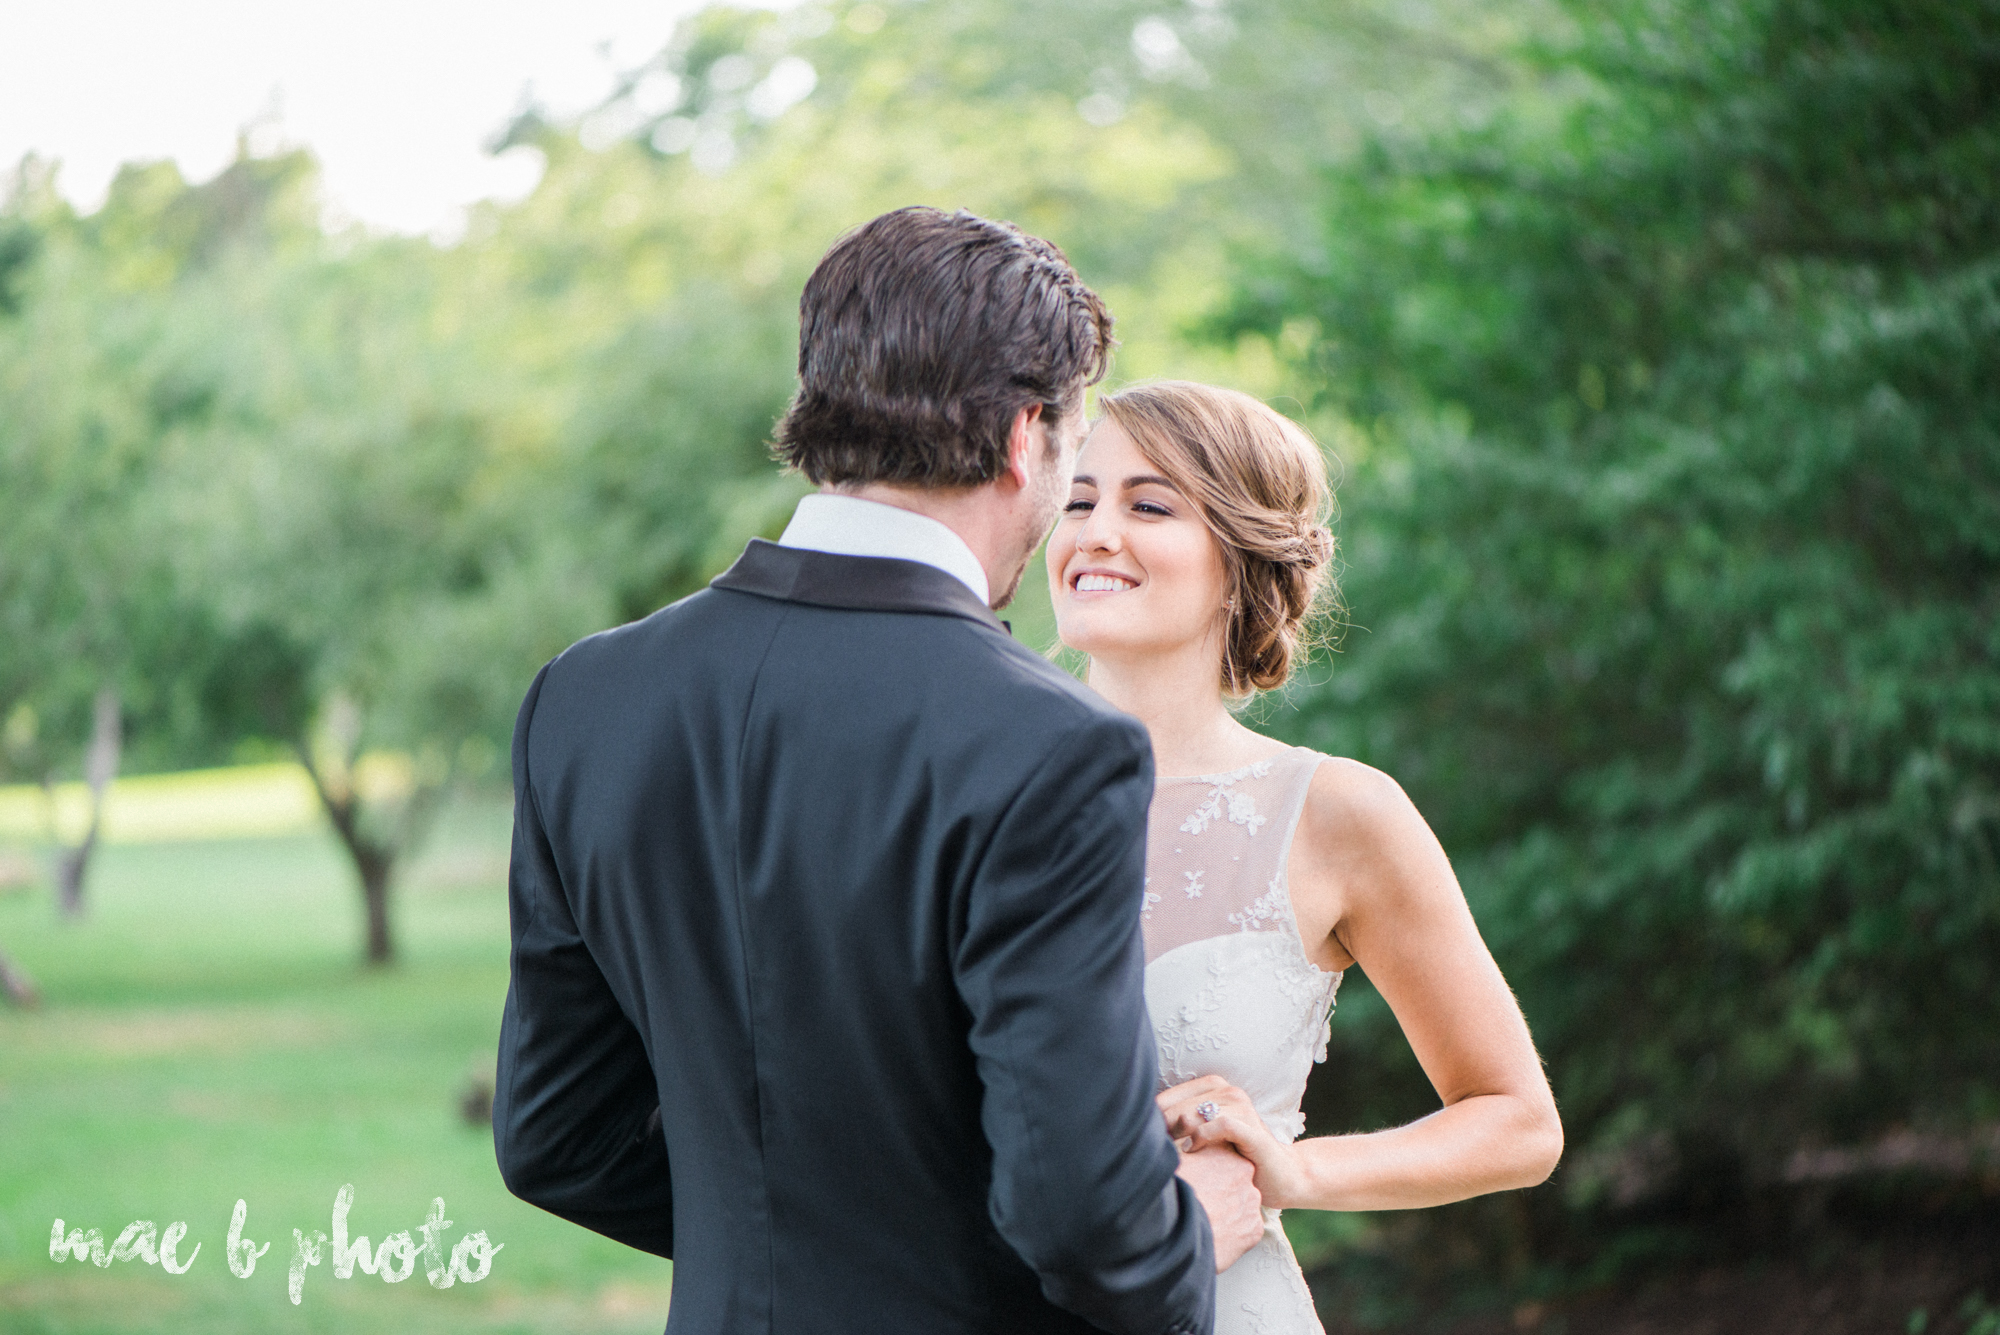 classic romantic summer wedding shoot at the mooreland mansion in cleveland ohio photographed by youngstown wedding photographer mae b photo-67.jpg